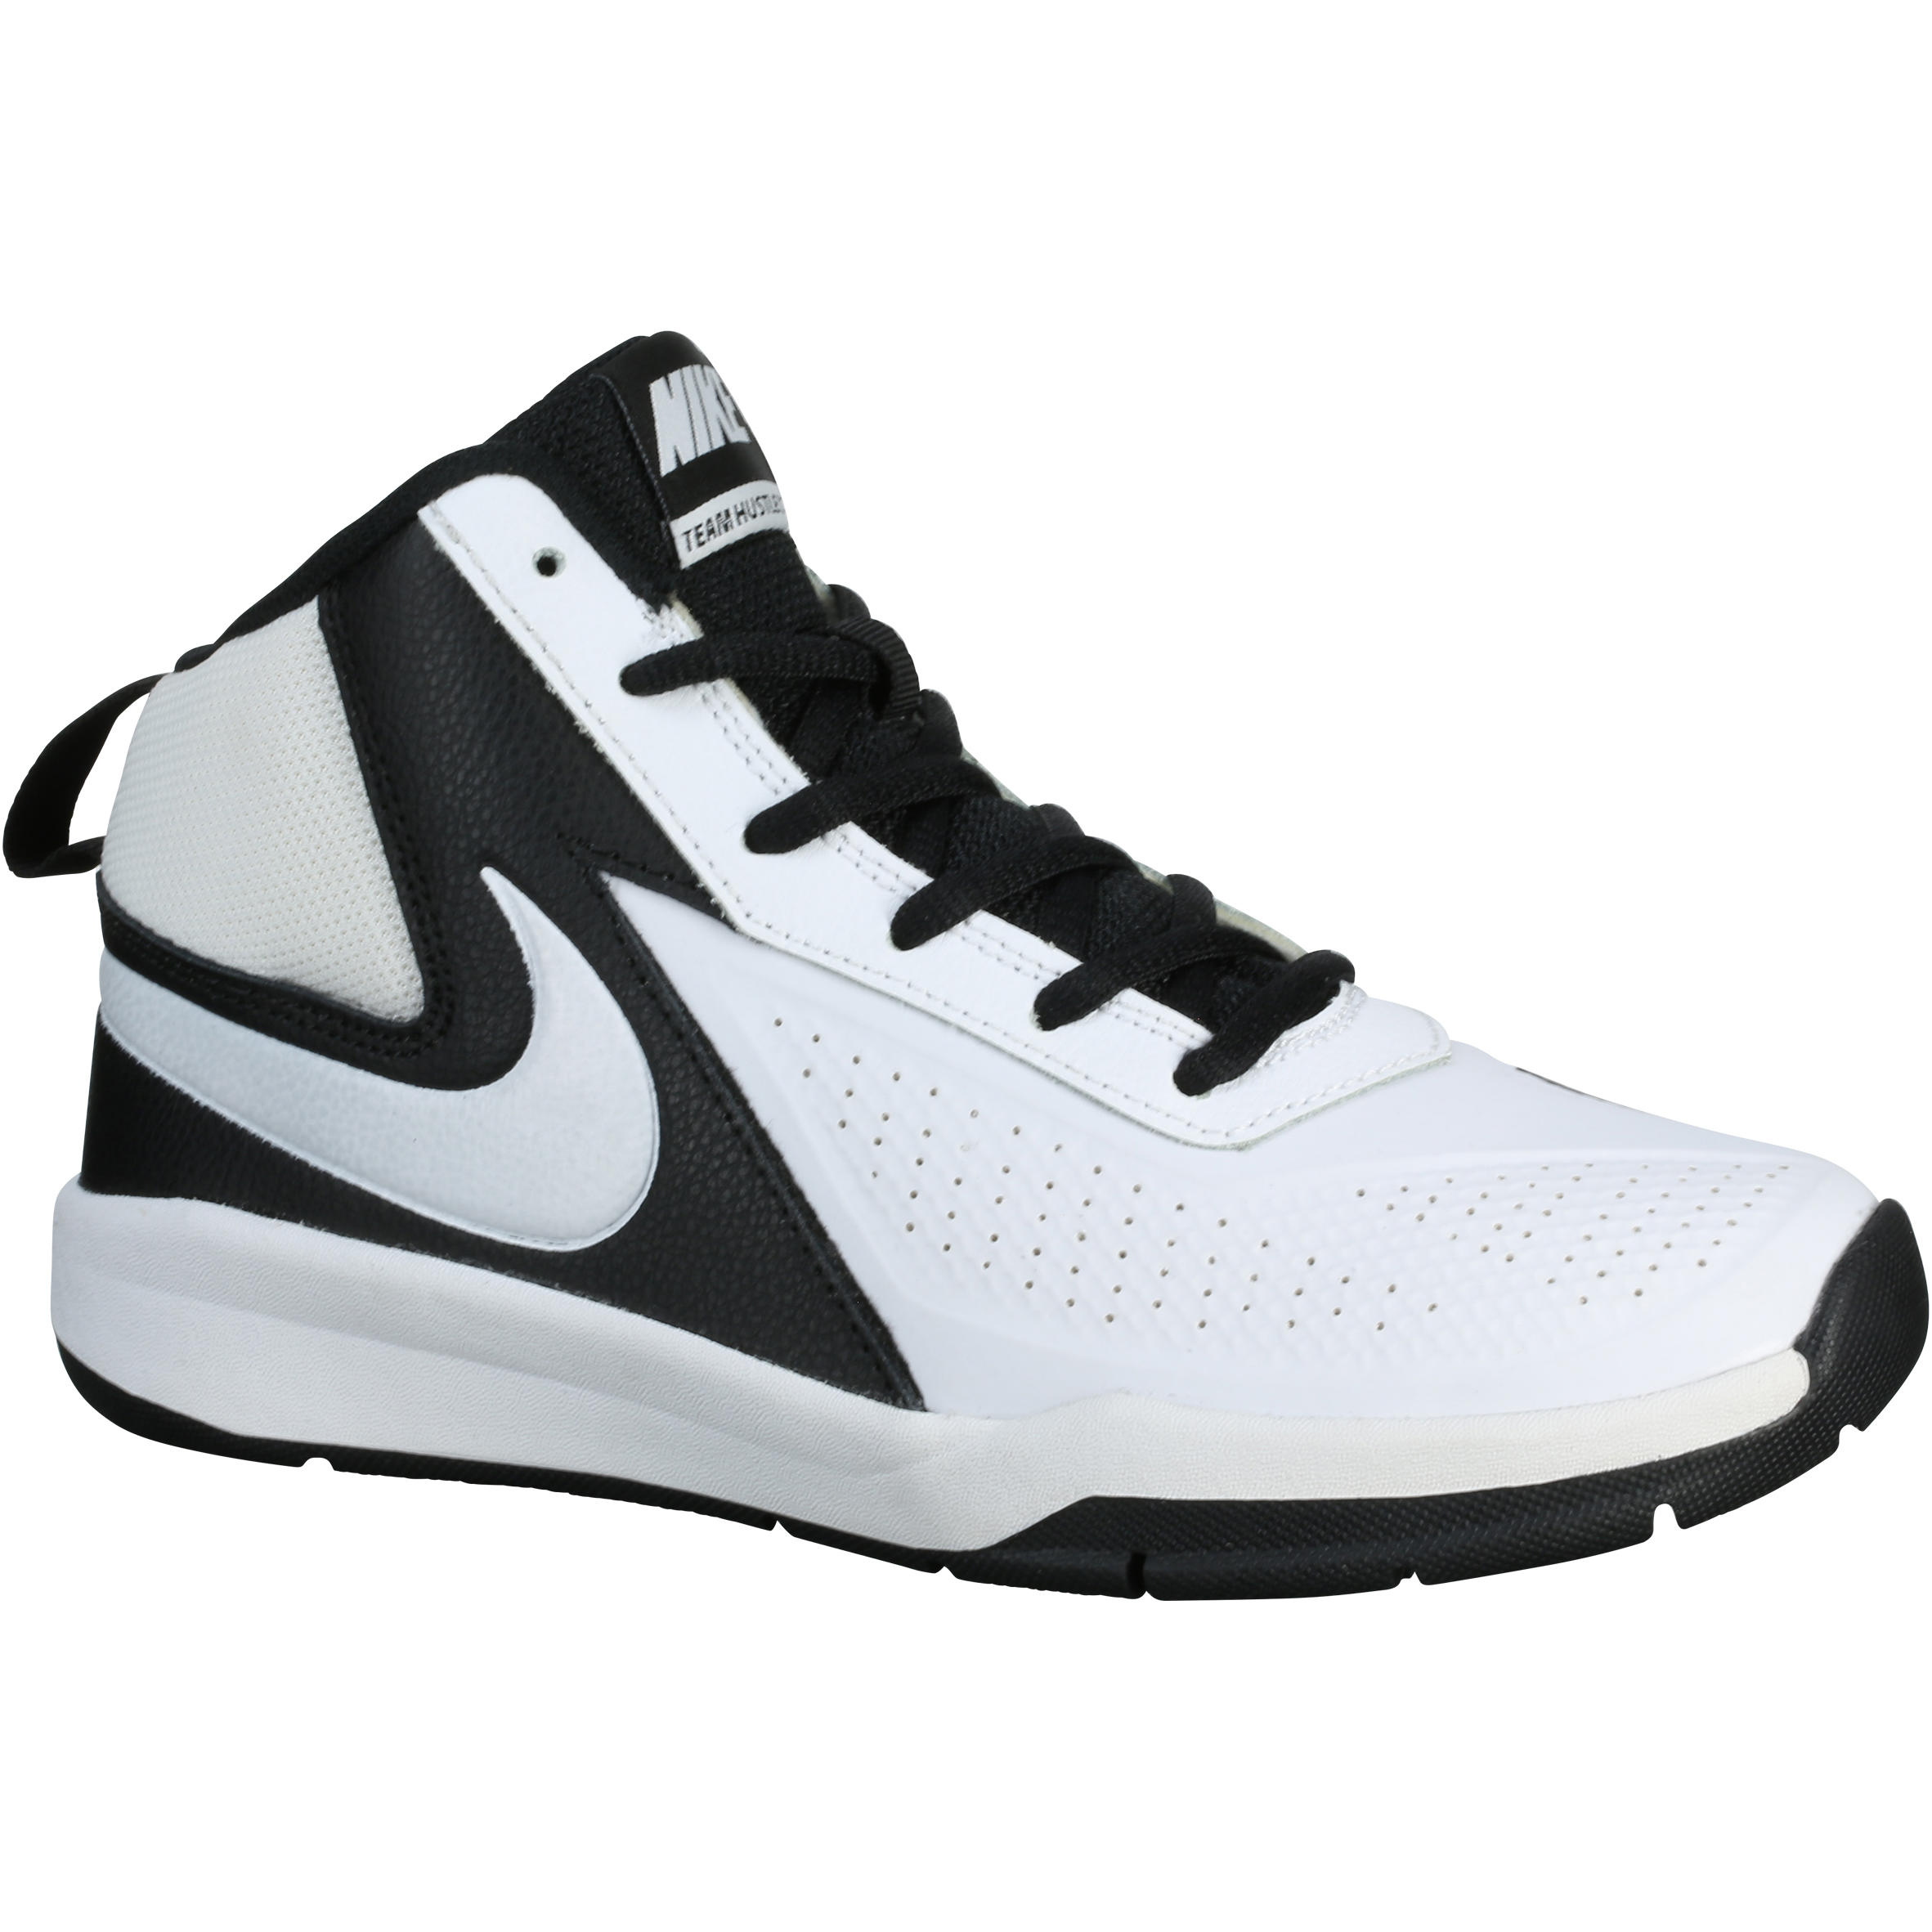 Nike Performance TEAM HUSTLE D 7 Basketbalschoenen white/black